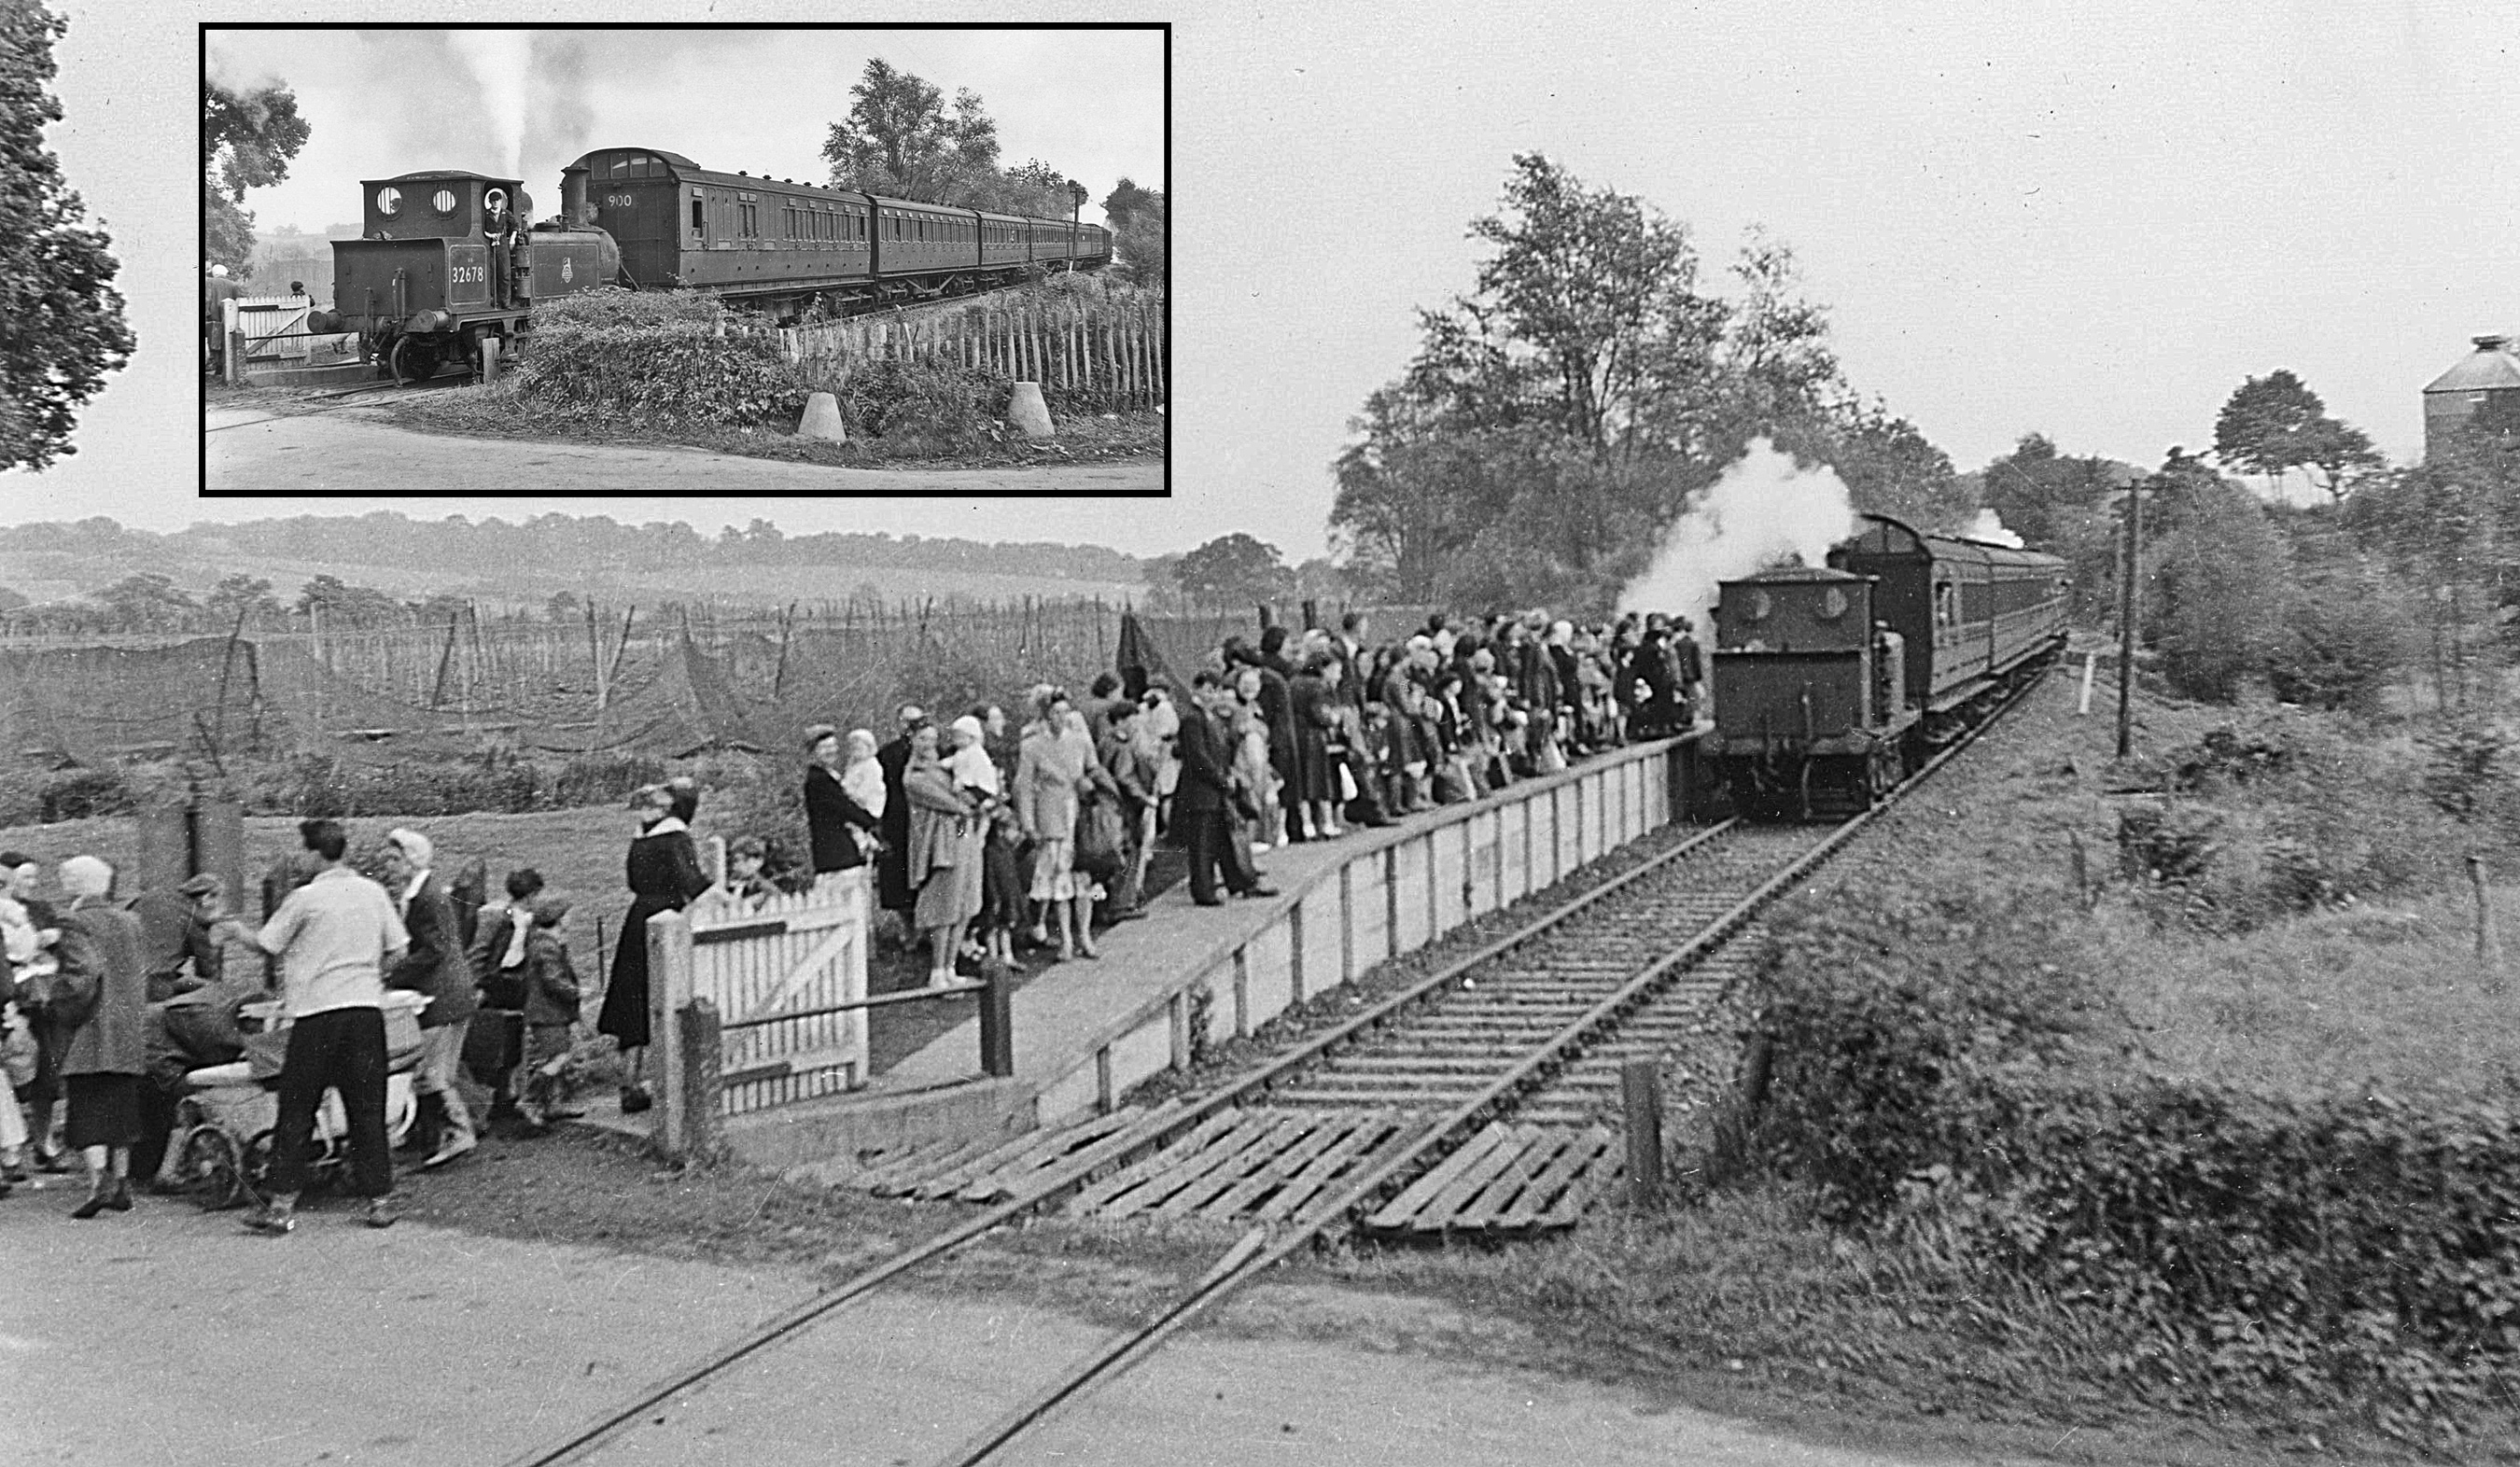 Image of train pulling into an open station. The platform is filled with adults and children. Their destination is the hop fields of Kent.